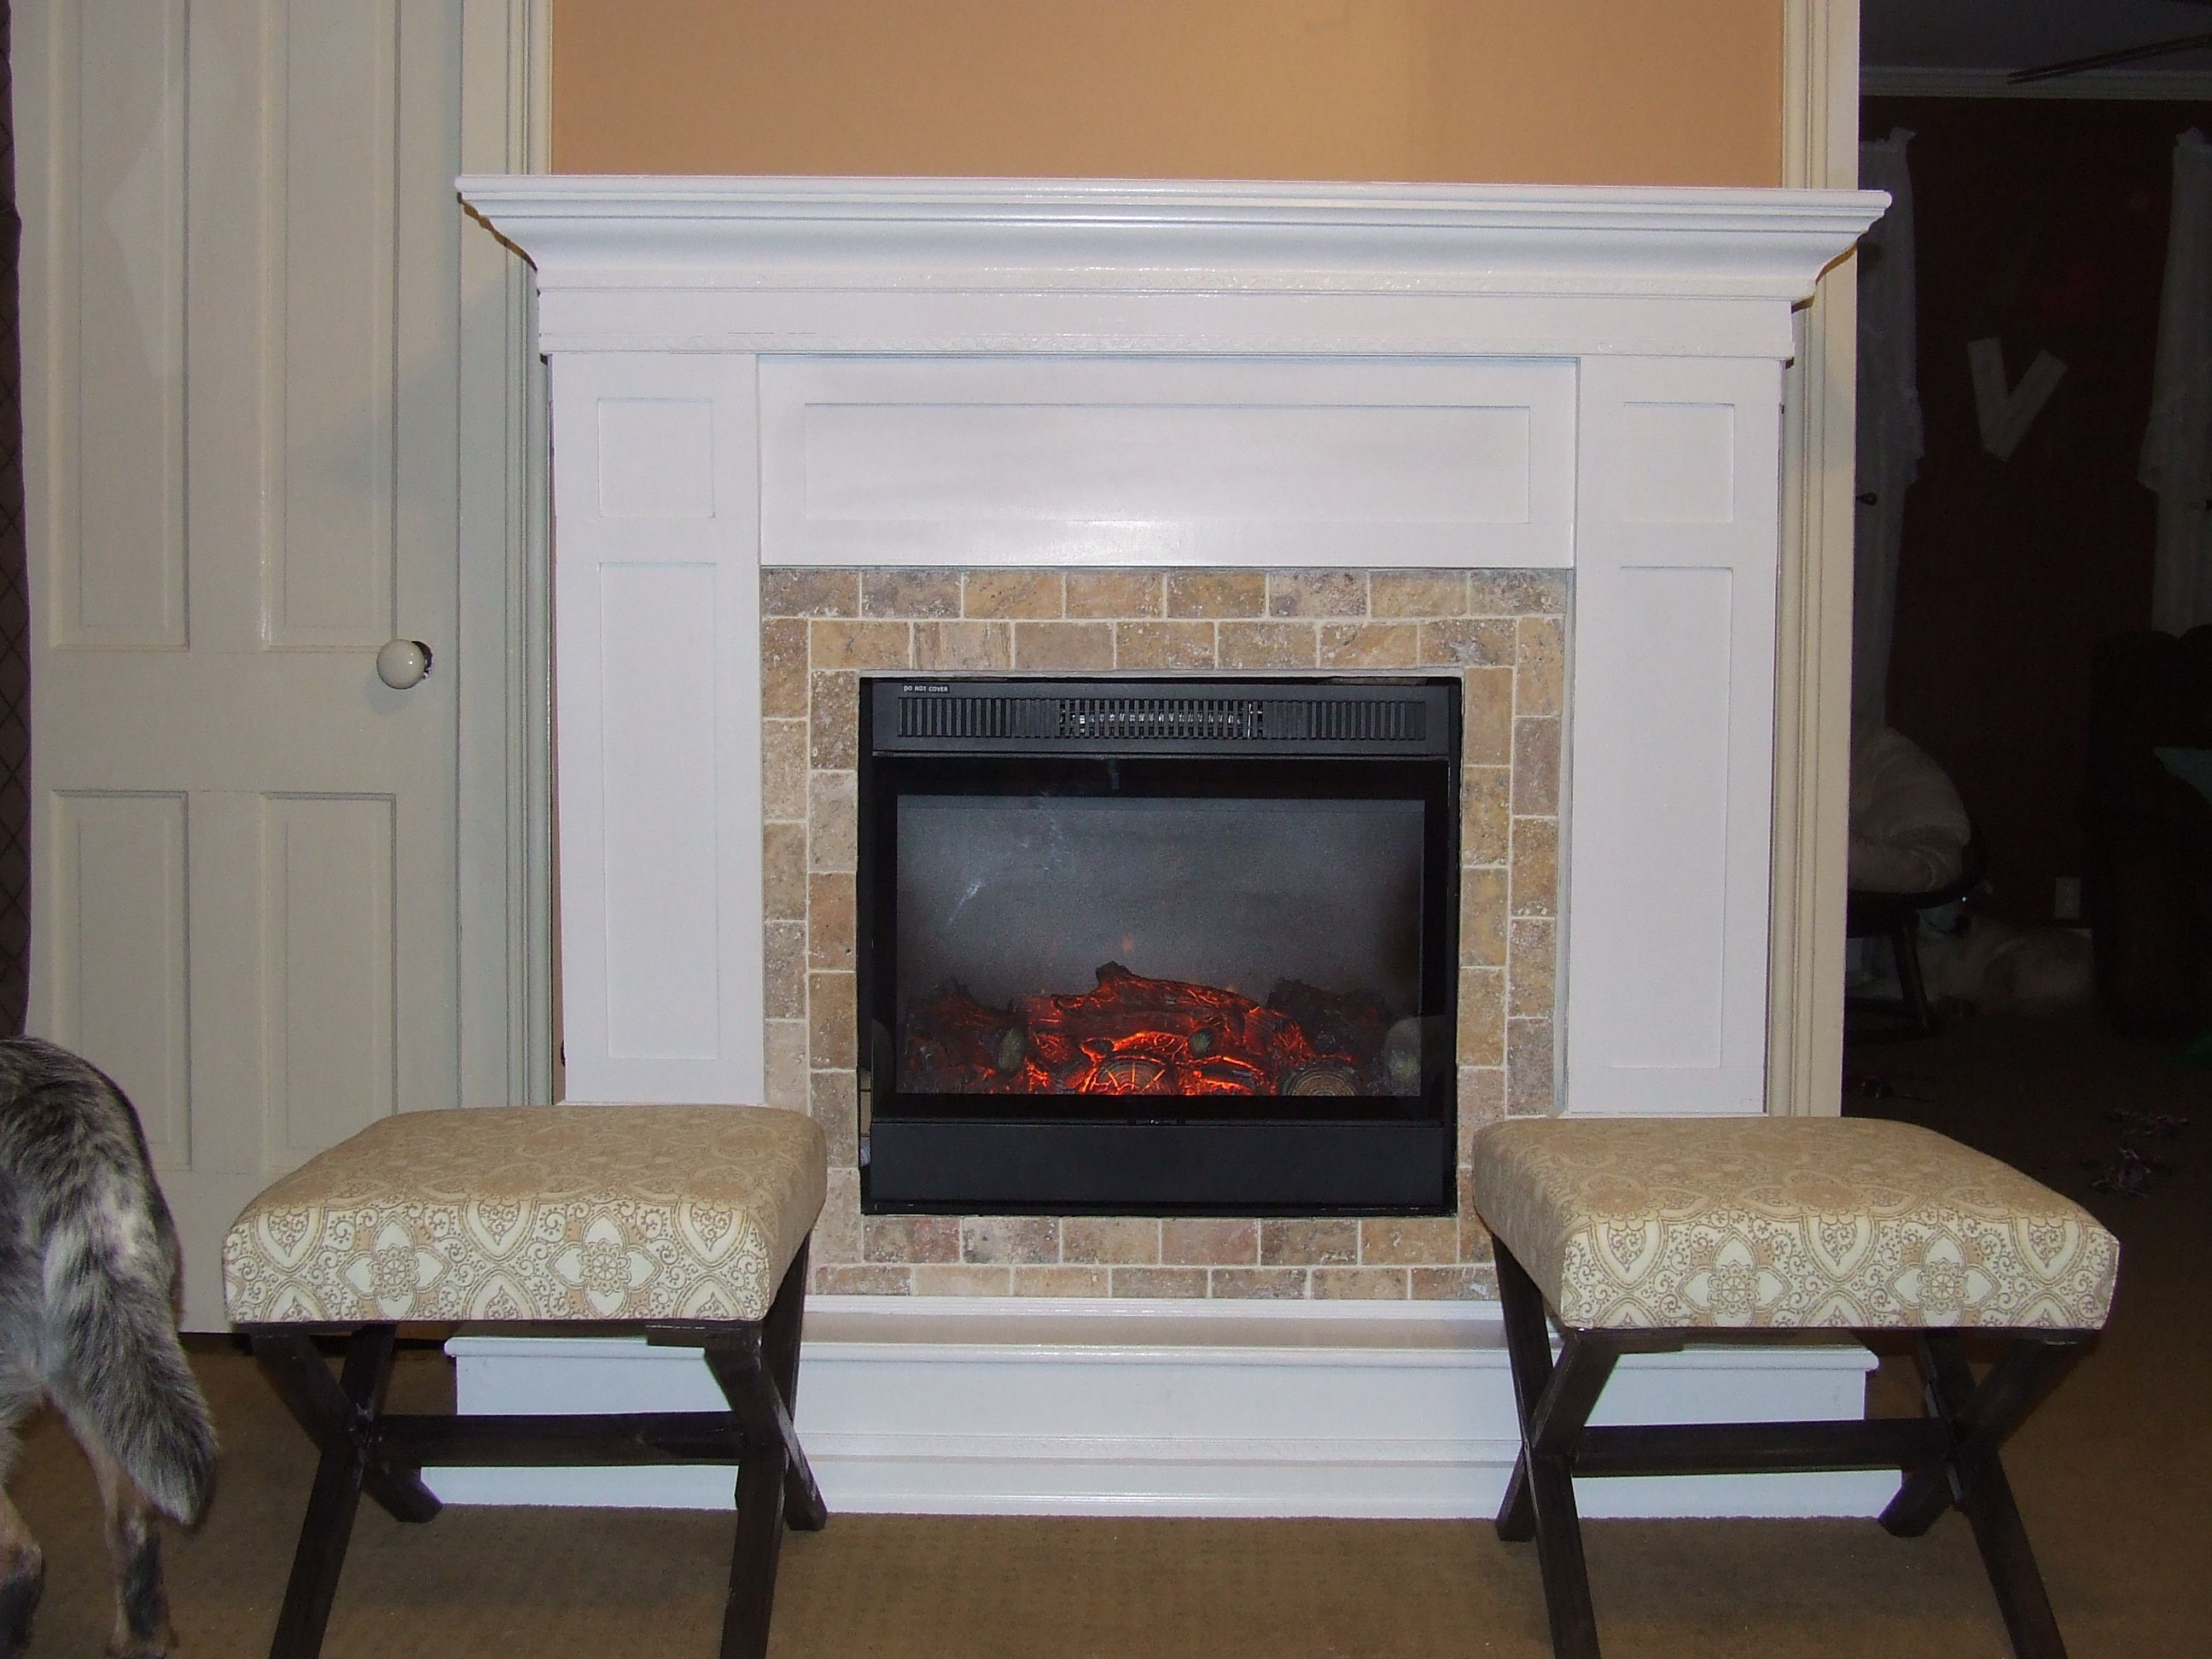 So, I built a fireplace surround and hearth benches all